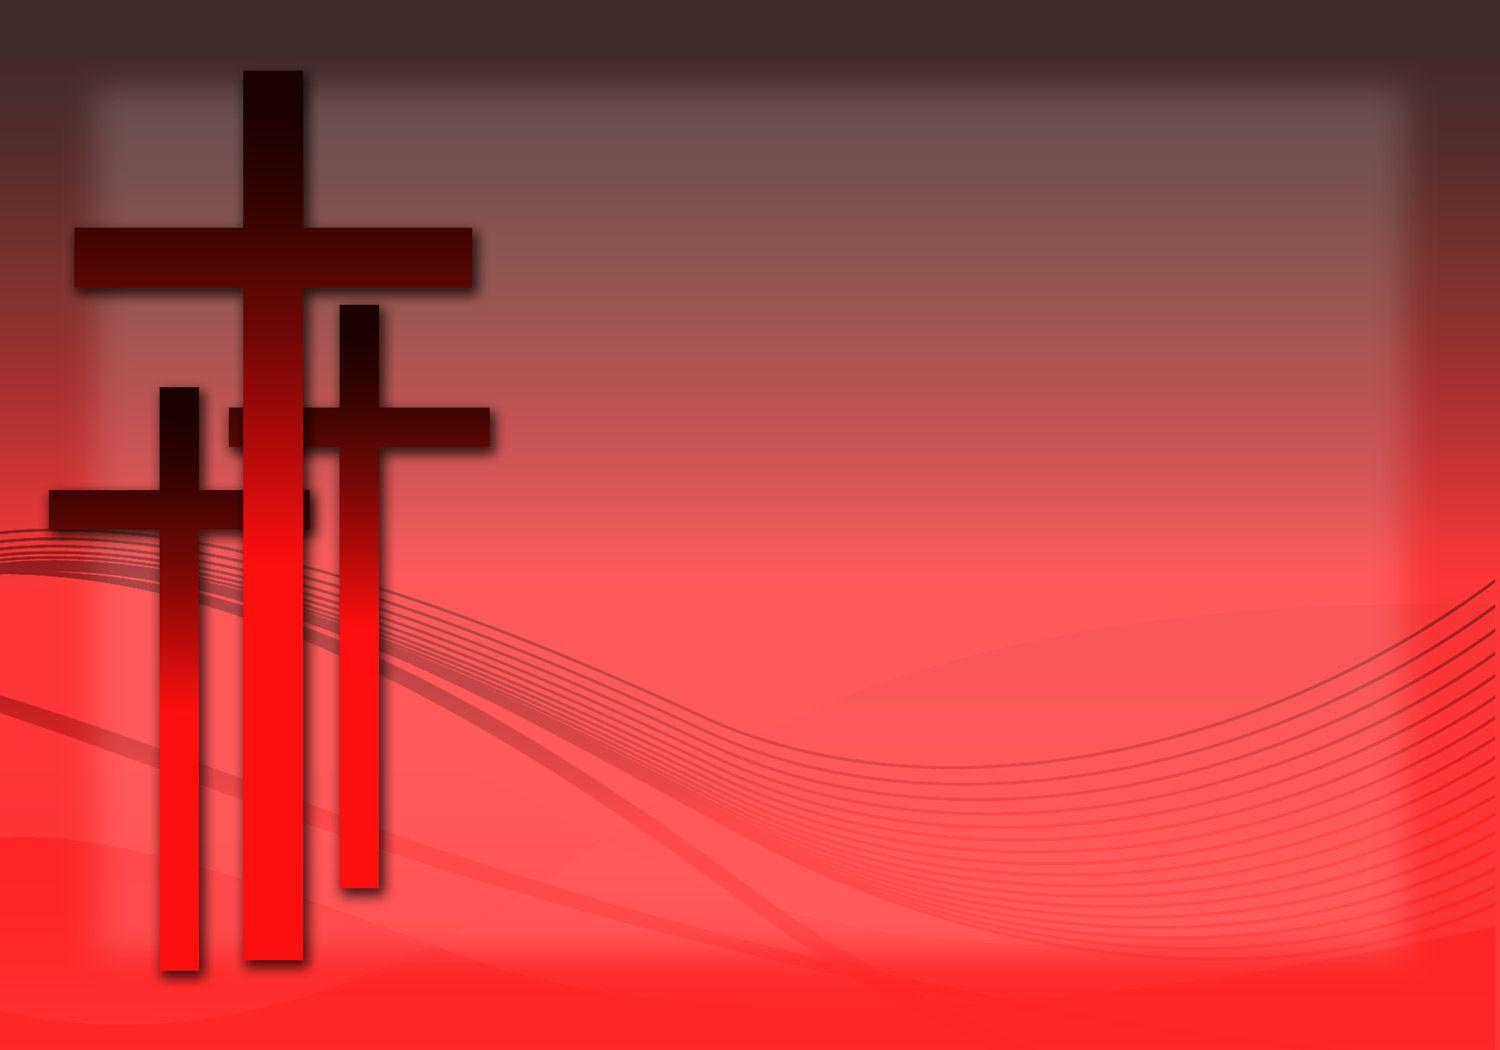 Christian Background Images